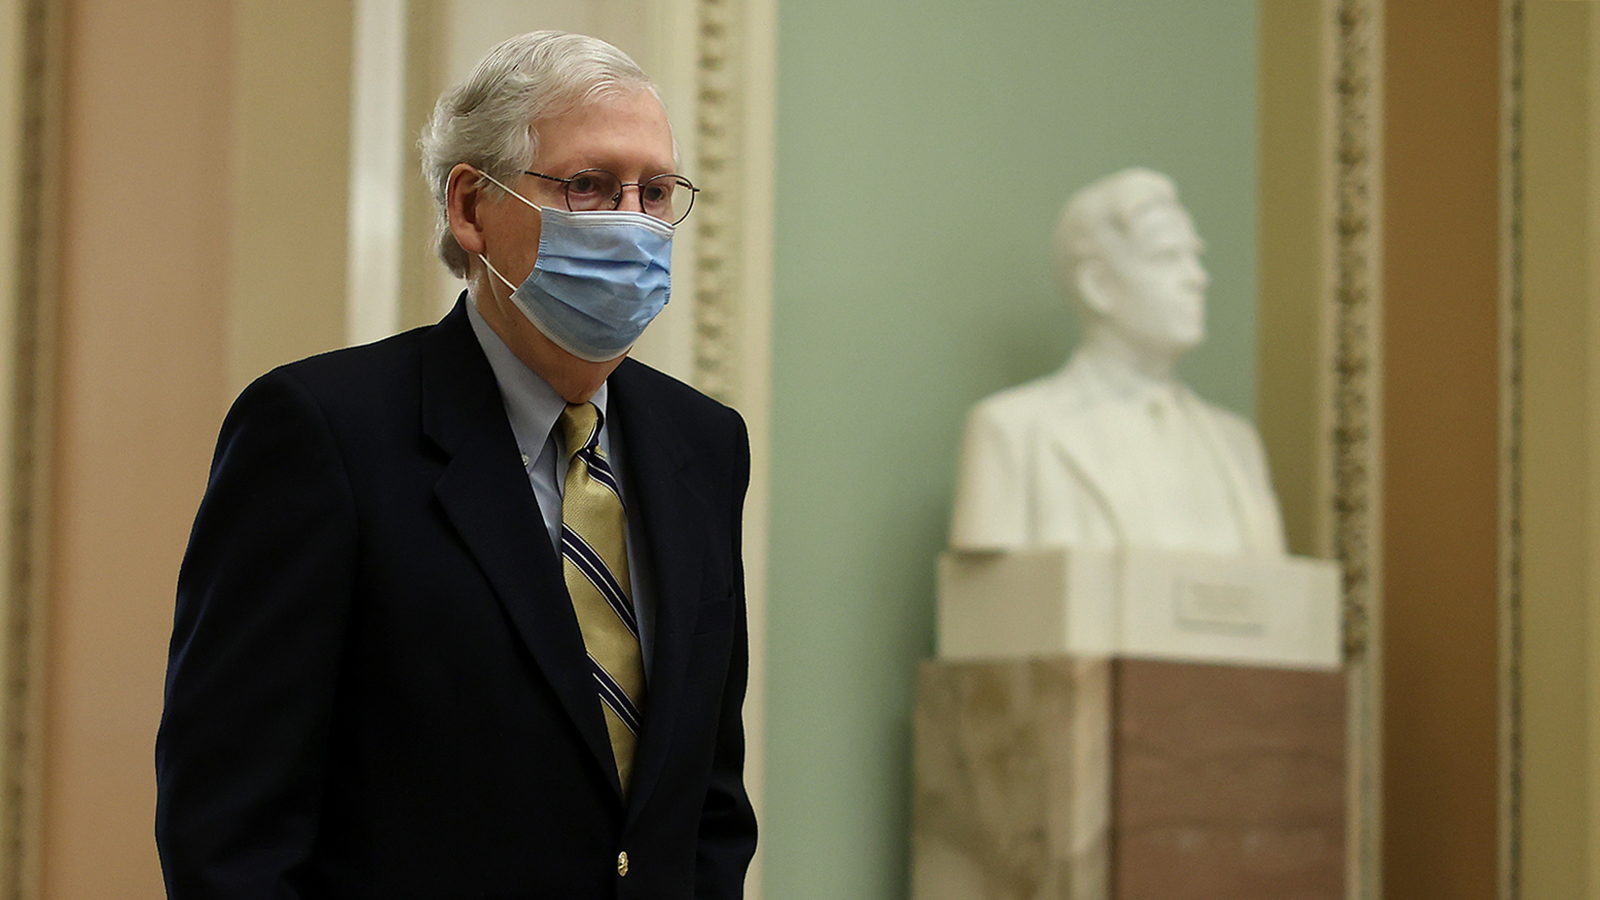 Resistance to January 6 commission grows among Senate Republicans